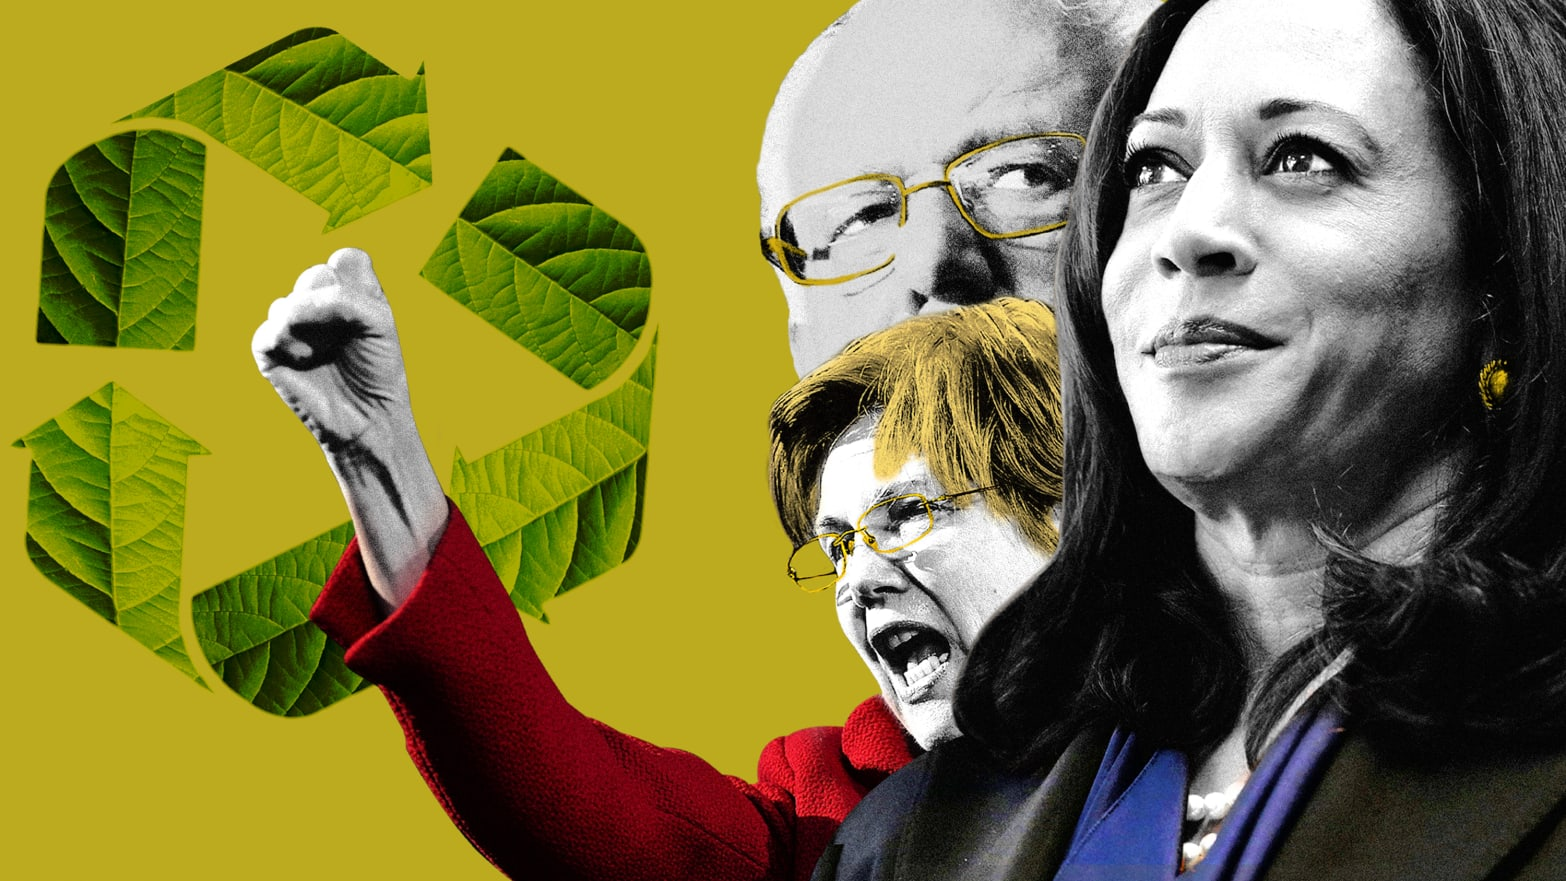 Bernie Sanders, Kamala Harris, Elizabeth Warren, and More: Who Are the Climate Change Candidates in the 2020 Race?